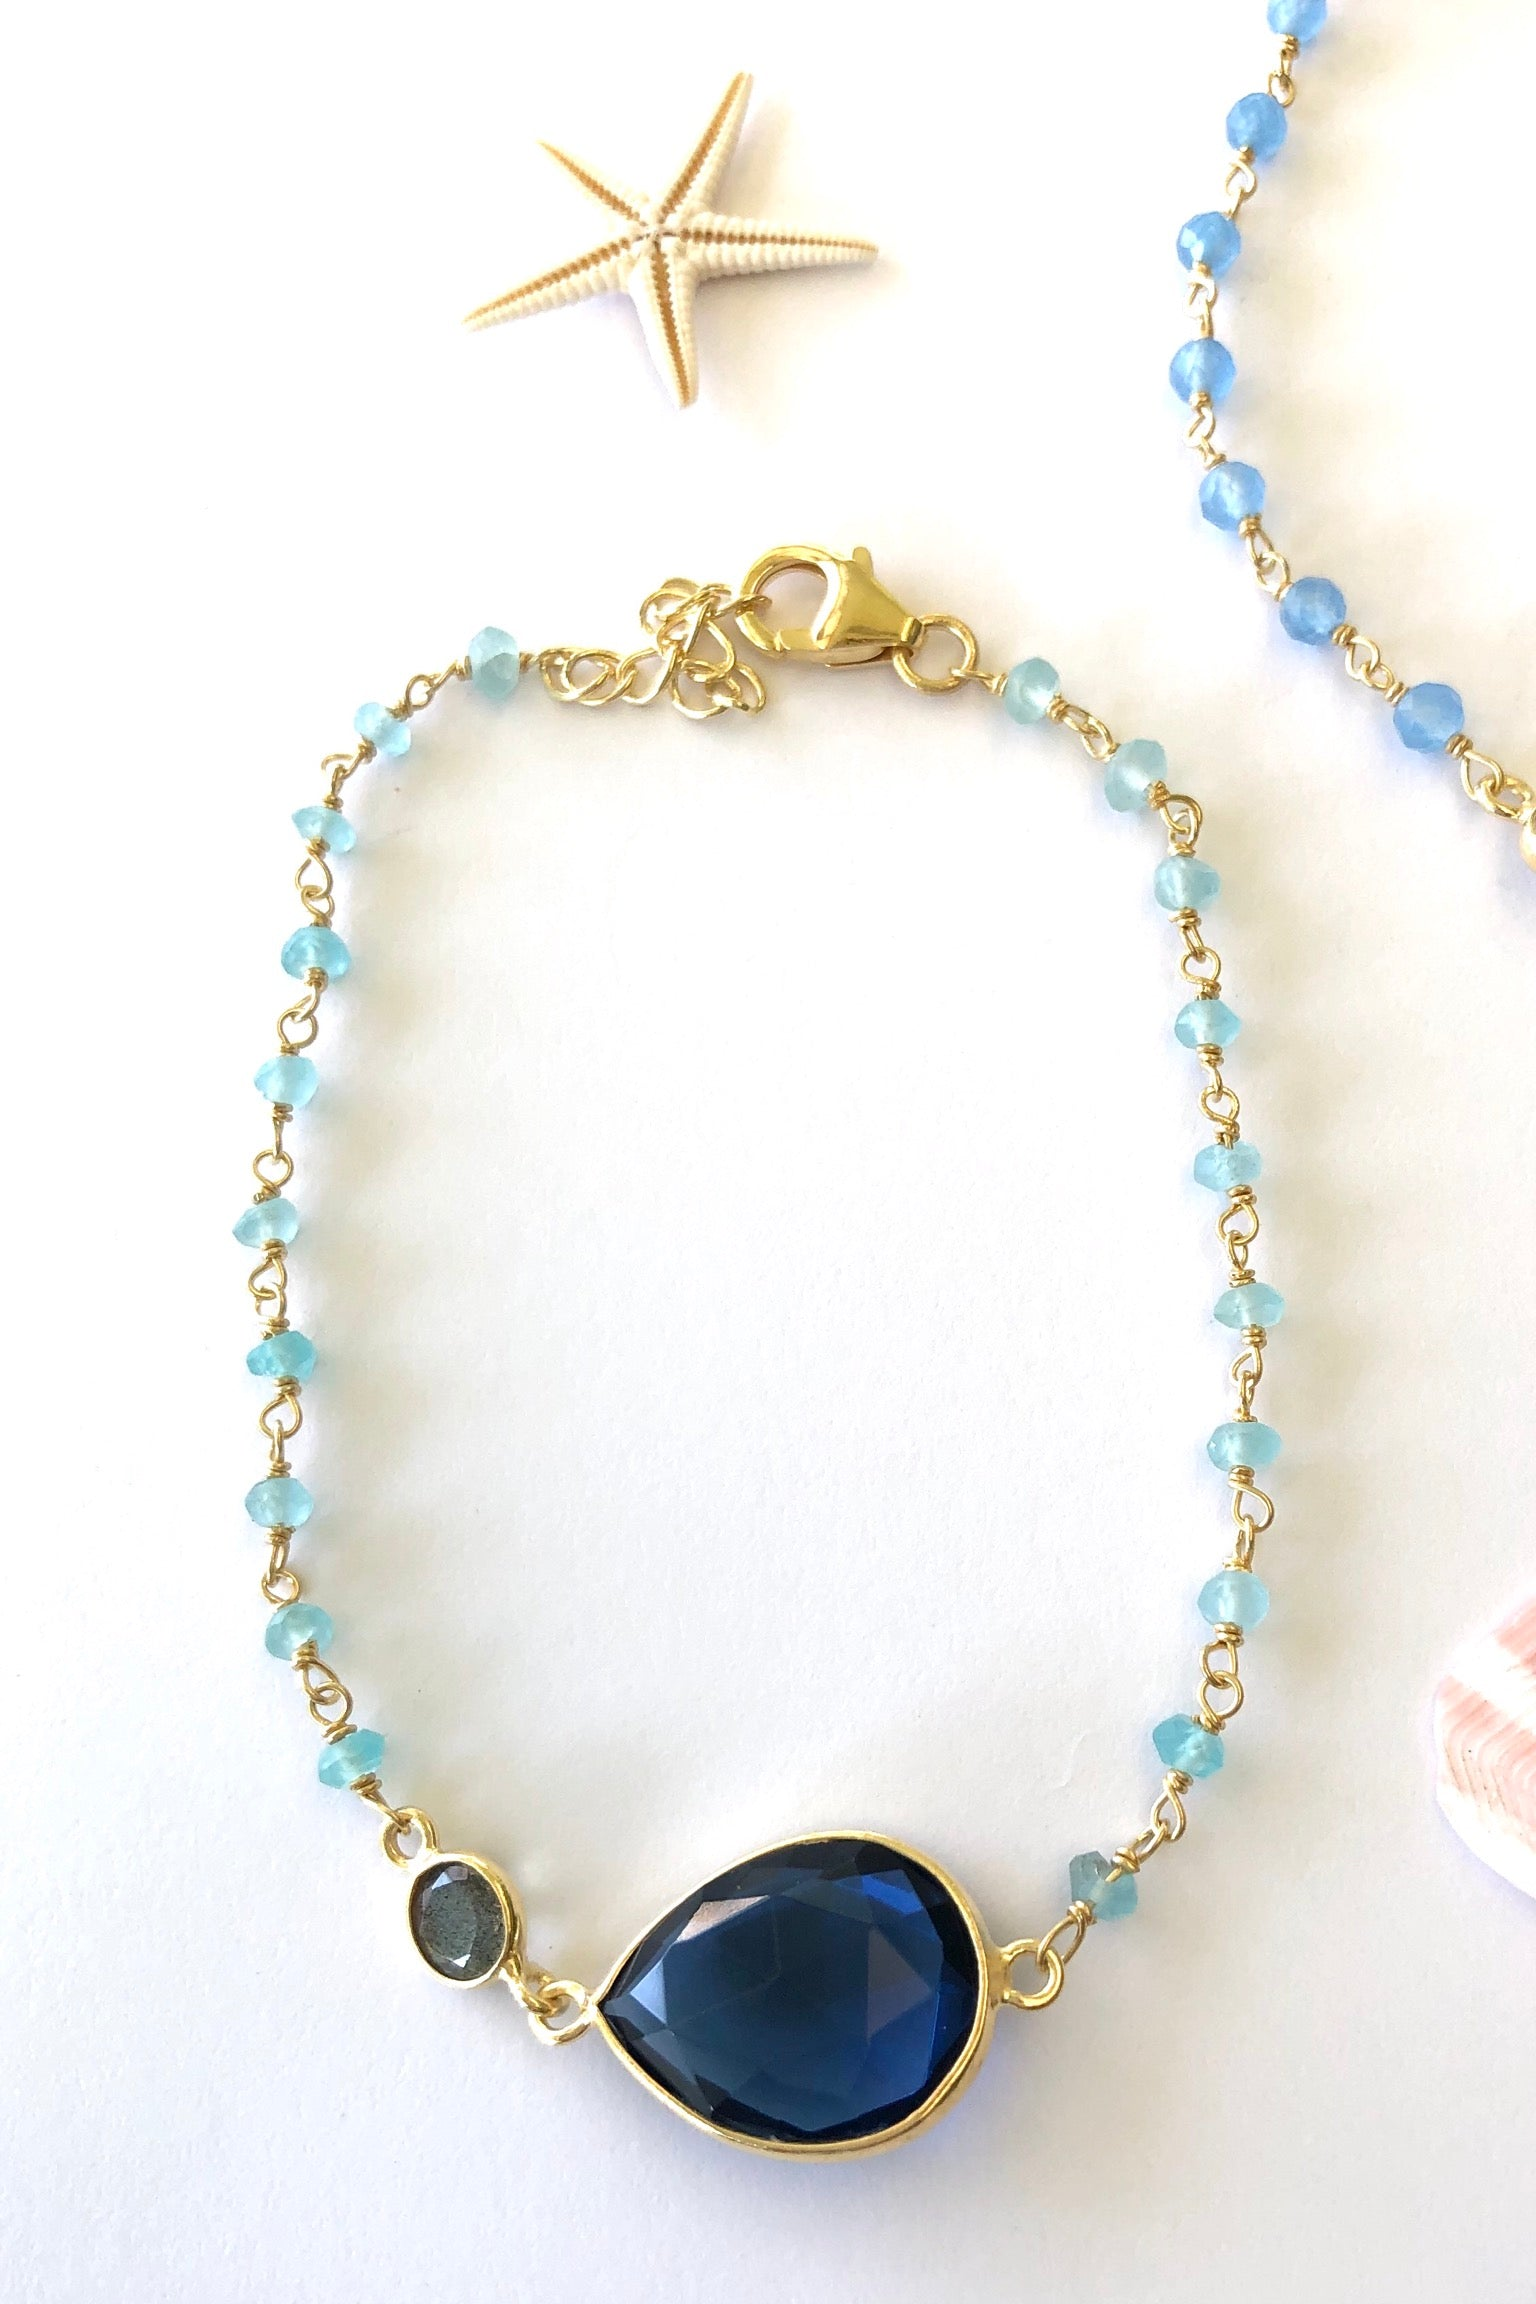 a gold vermeil chain with glistening beads